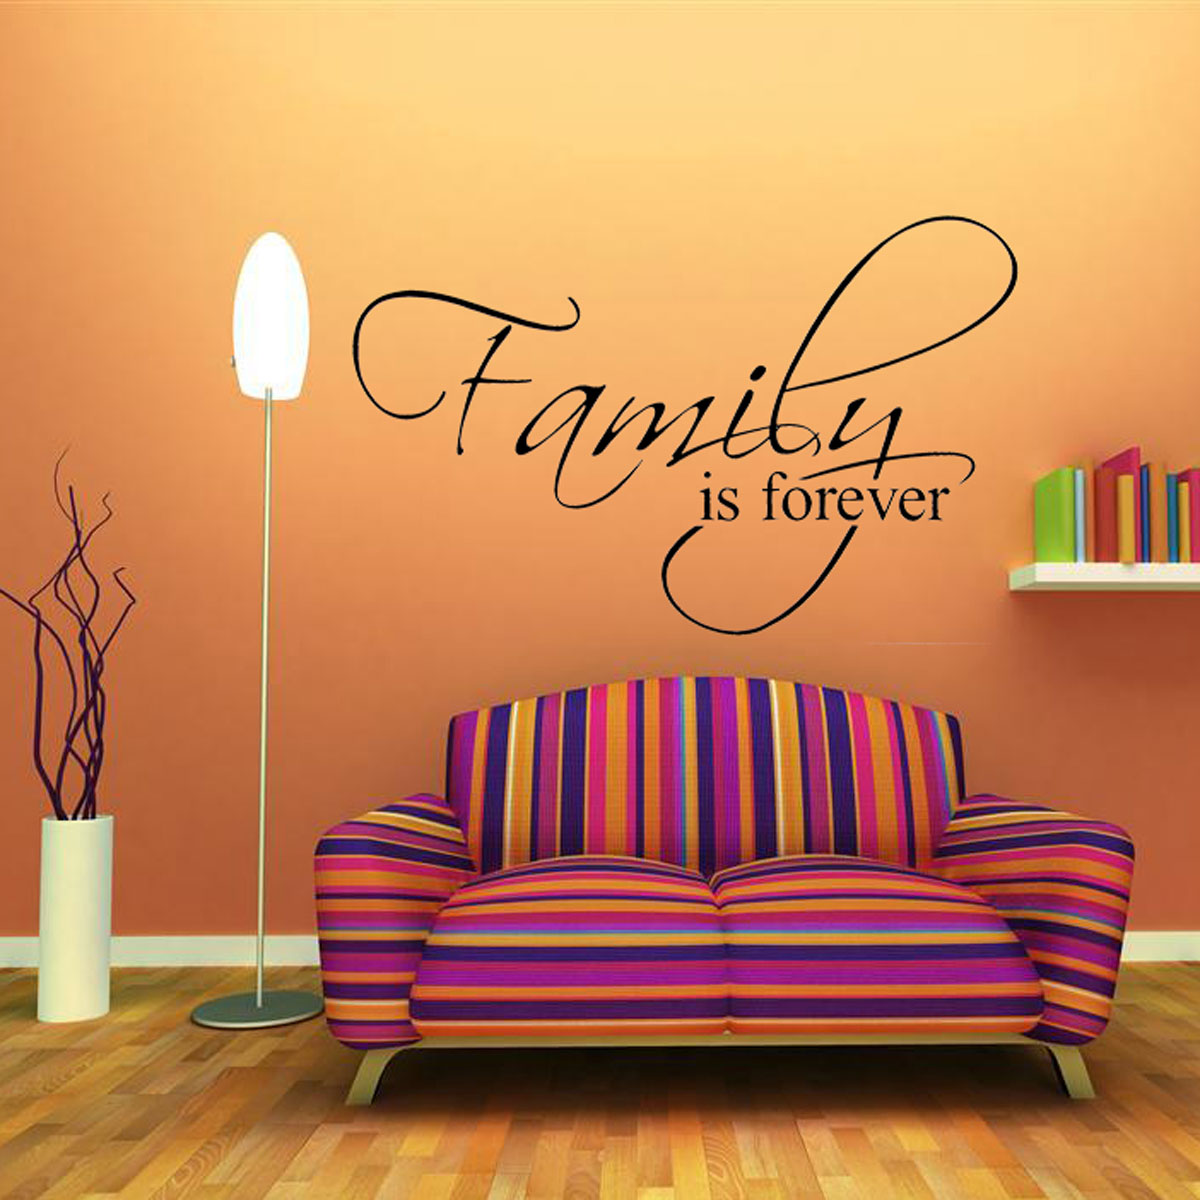 Family diy quote removable art wall sticker mirror decal for Diy photo wall mural